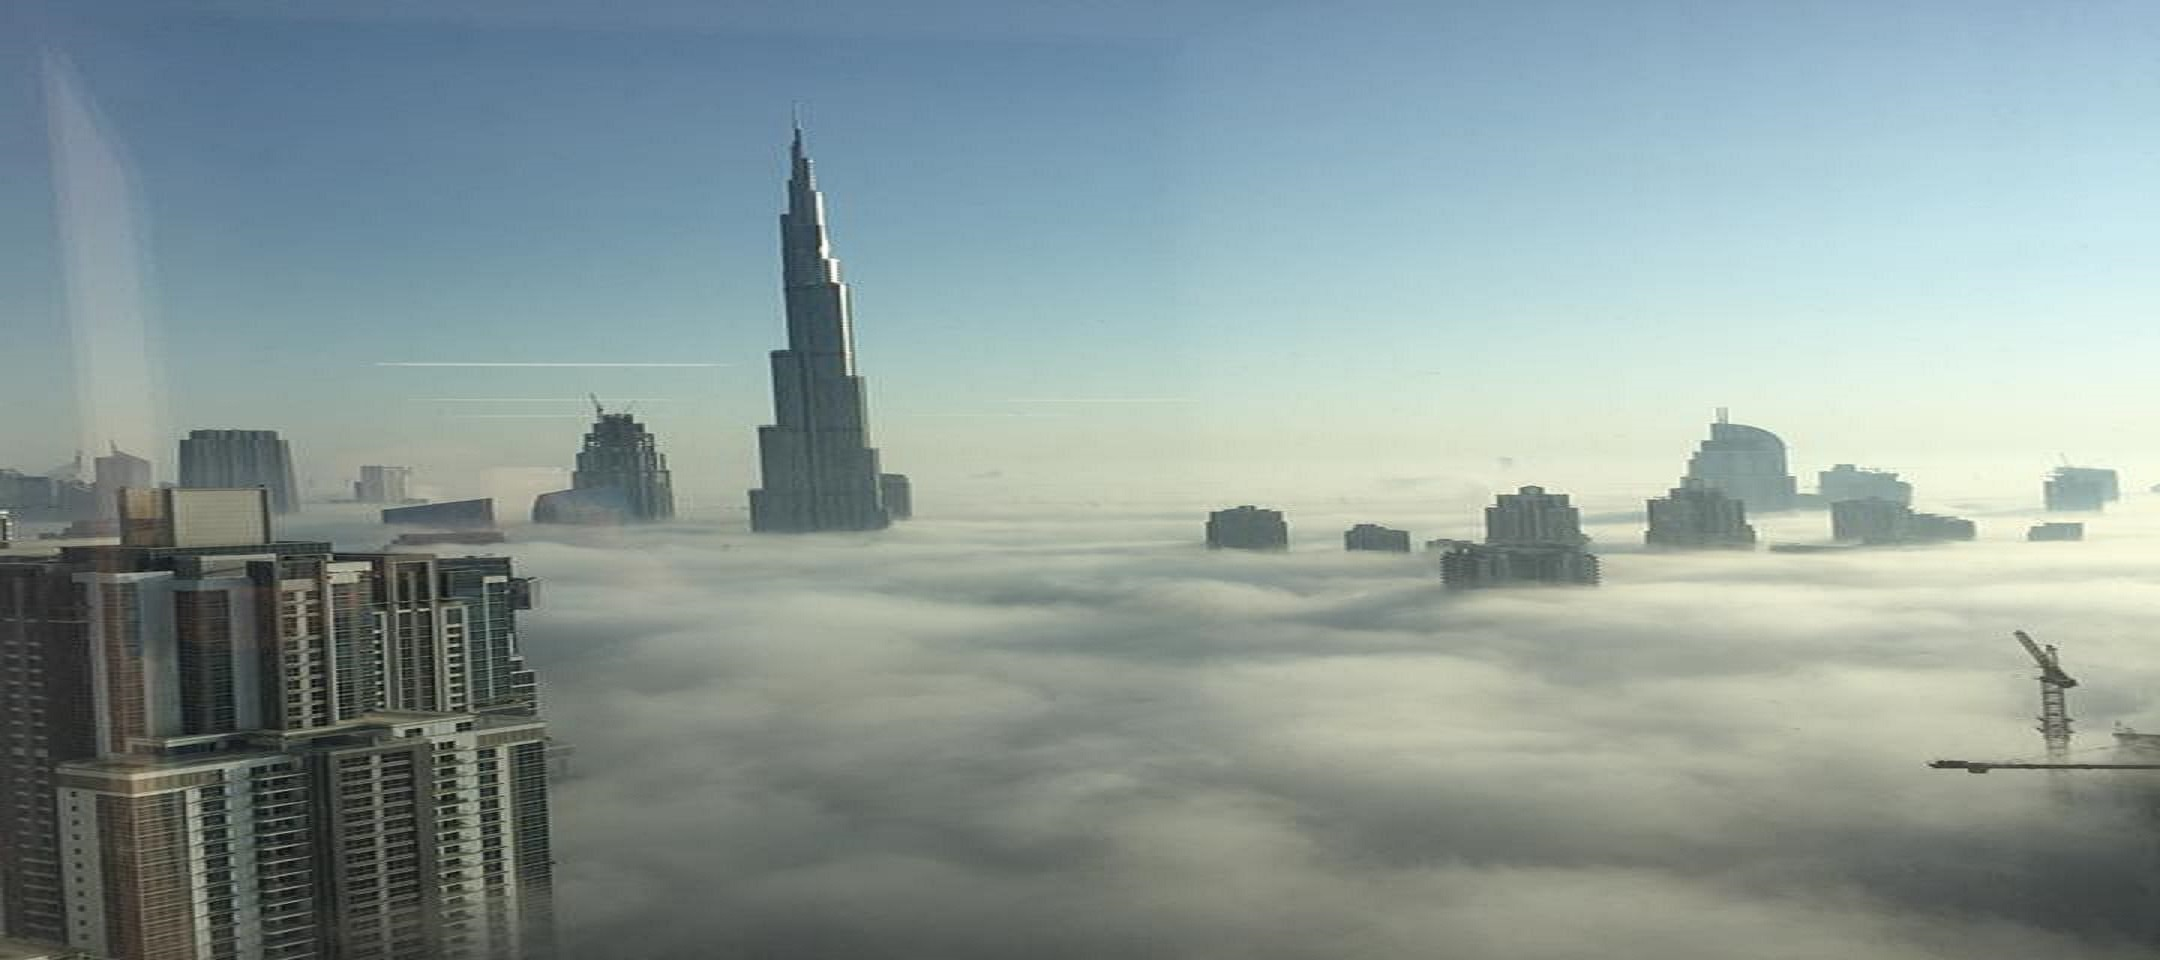 Real estate in Dubai, United Arab Emirates - October 2015 Fog.